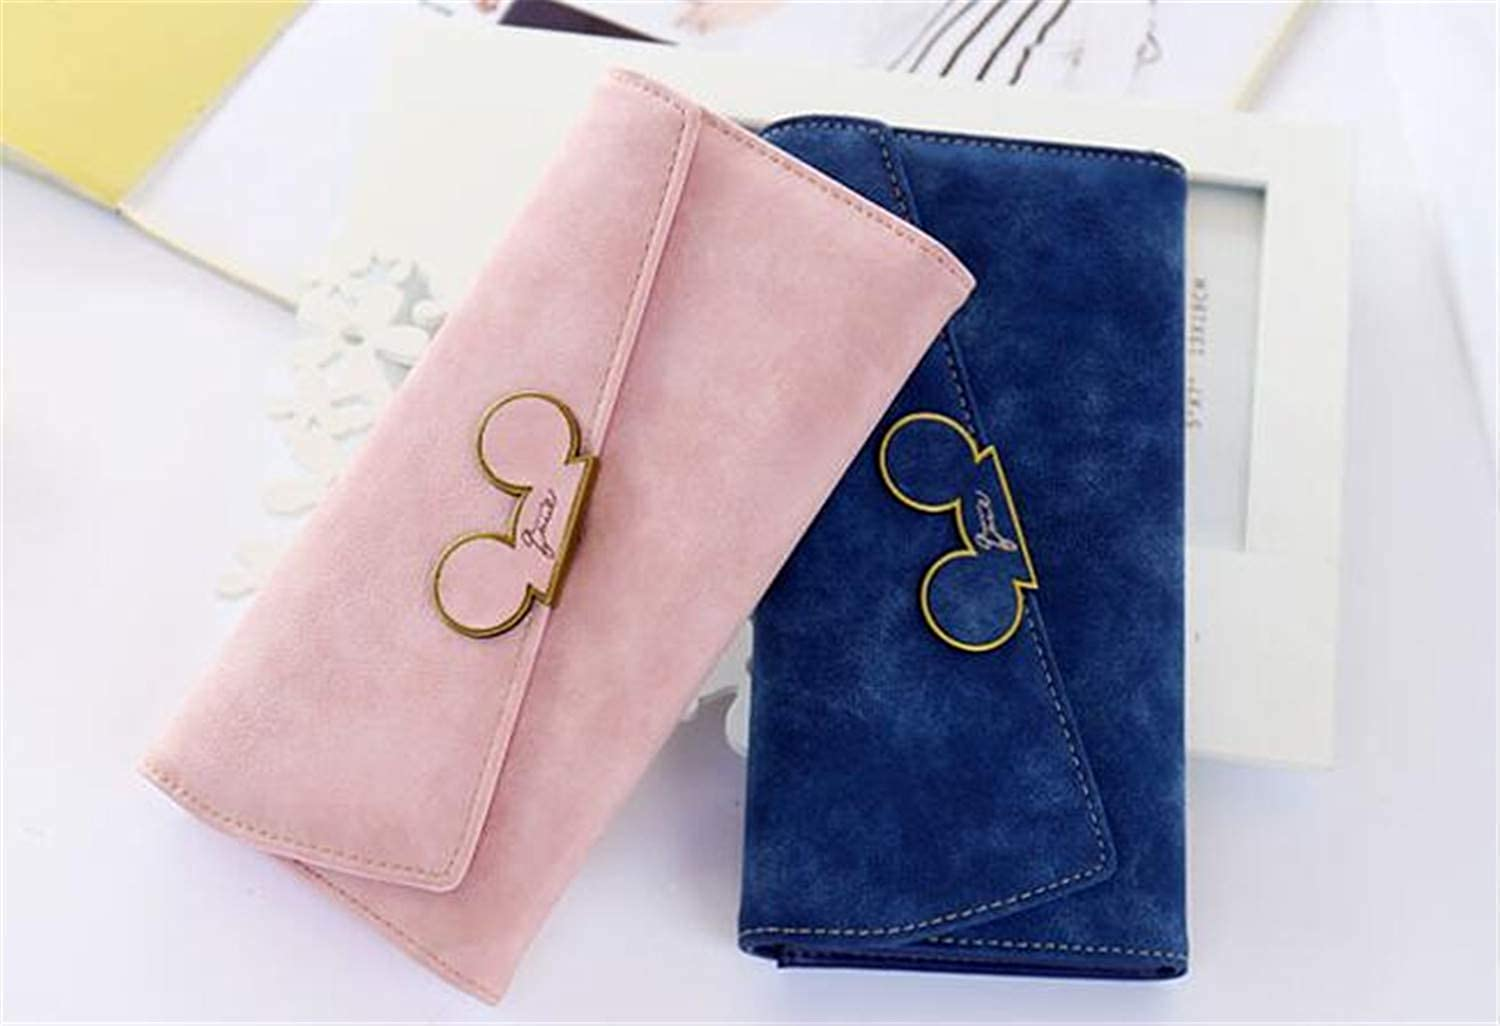 Cross Wallet Purse Women Scrub Personality Fashion Long Wallet Solid colorLarge Capacity Sweet Ladies Student Girls Simple Ins Wallet 2pcs (19.1  9.5  2.3cm) for Work (color   A)